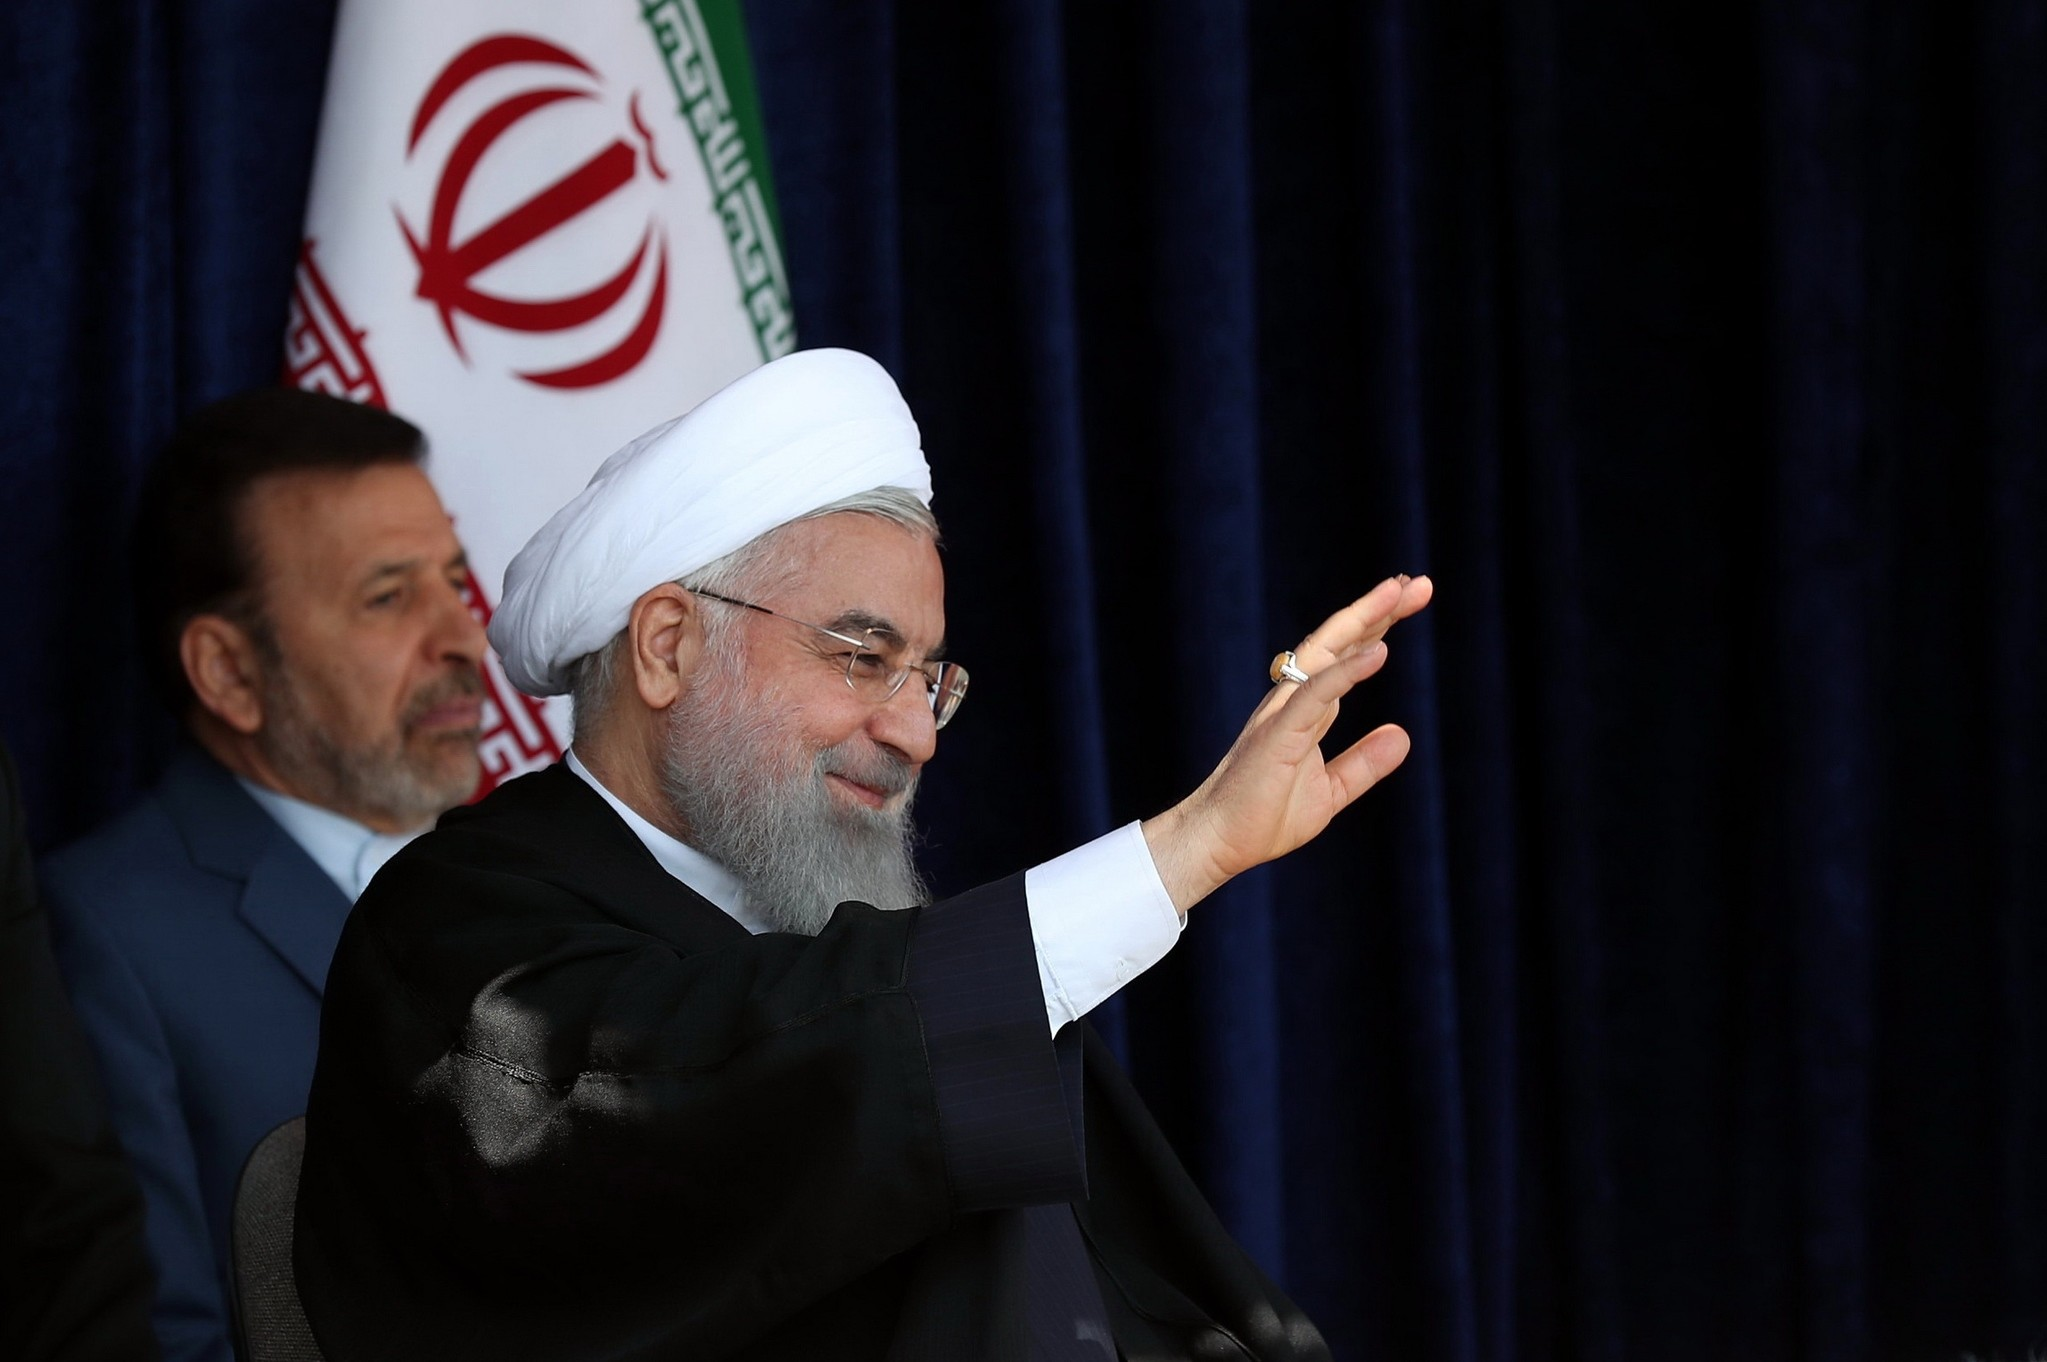 Iranian President Hassan Rouhani speaks to the crowd in the city of Sabzevarr, May 6.